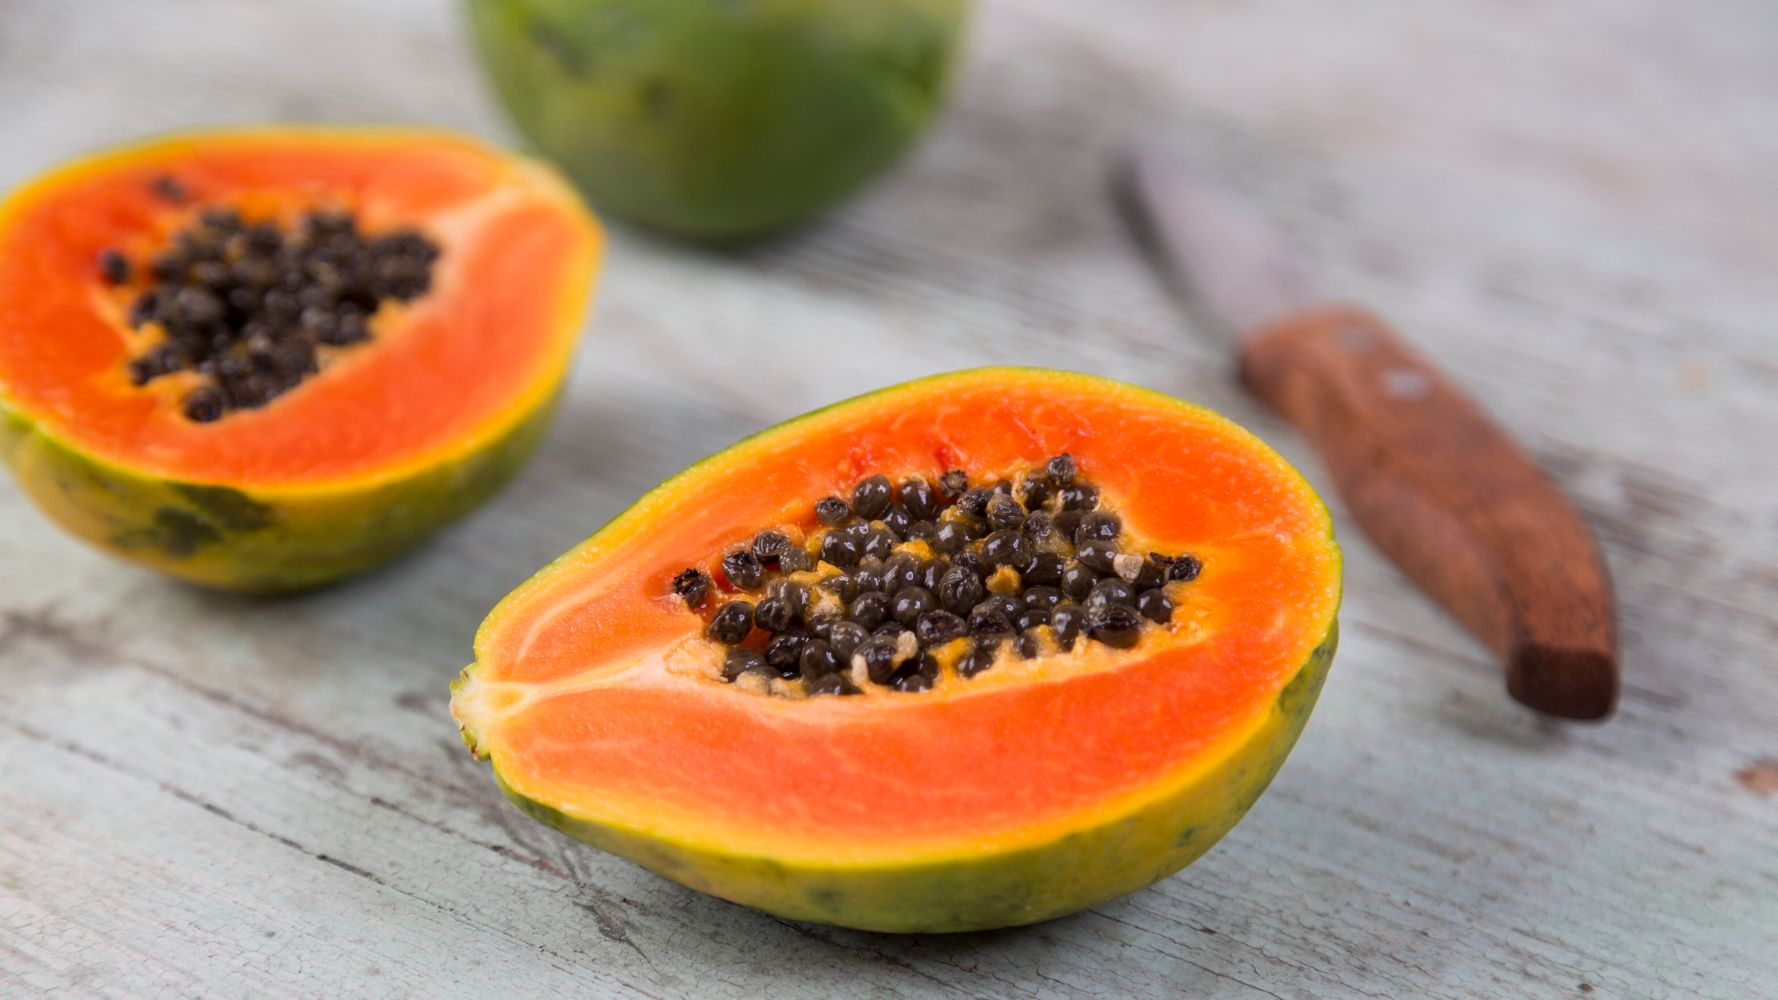 Papayas From Mexico Linked To Salmonella Outbreak In 6